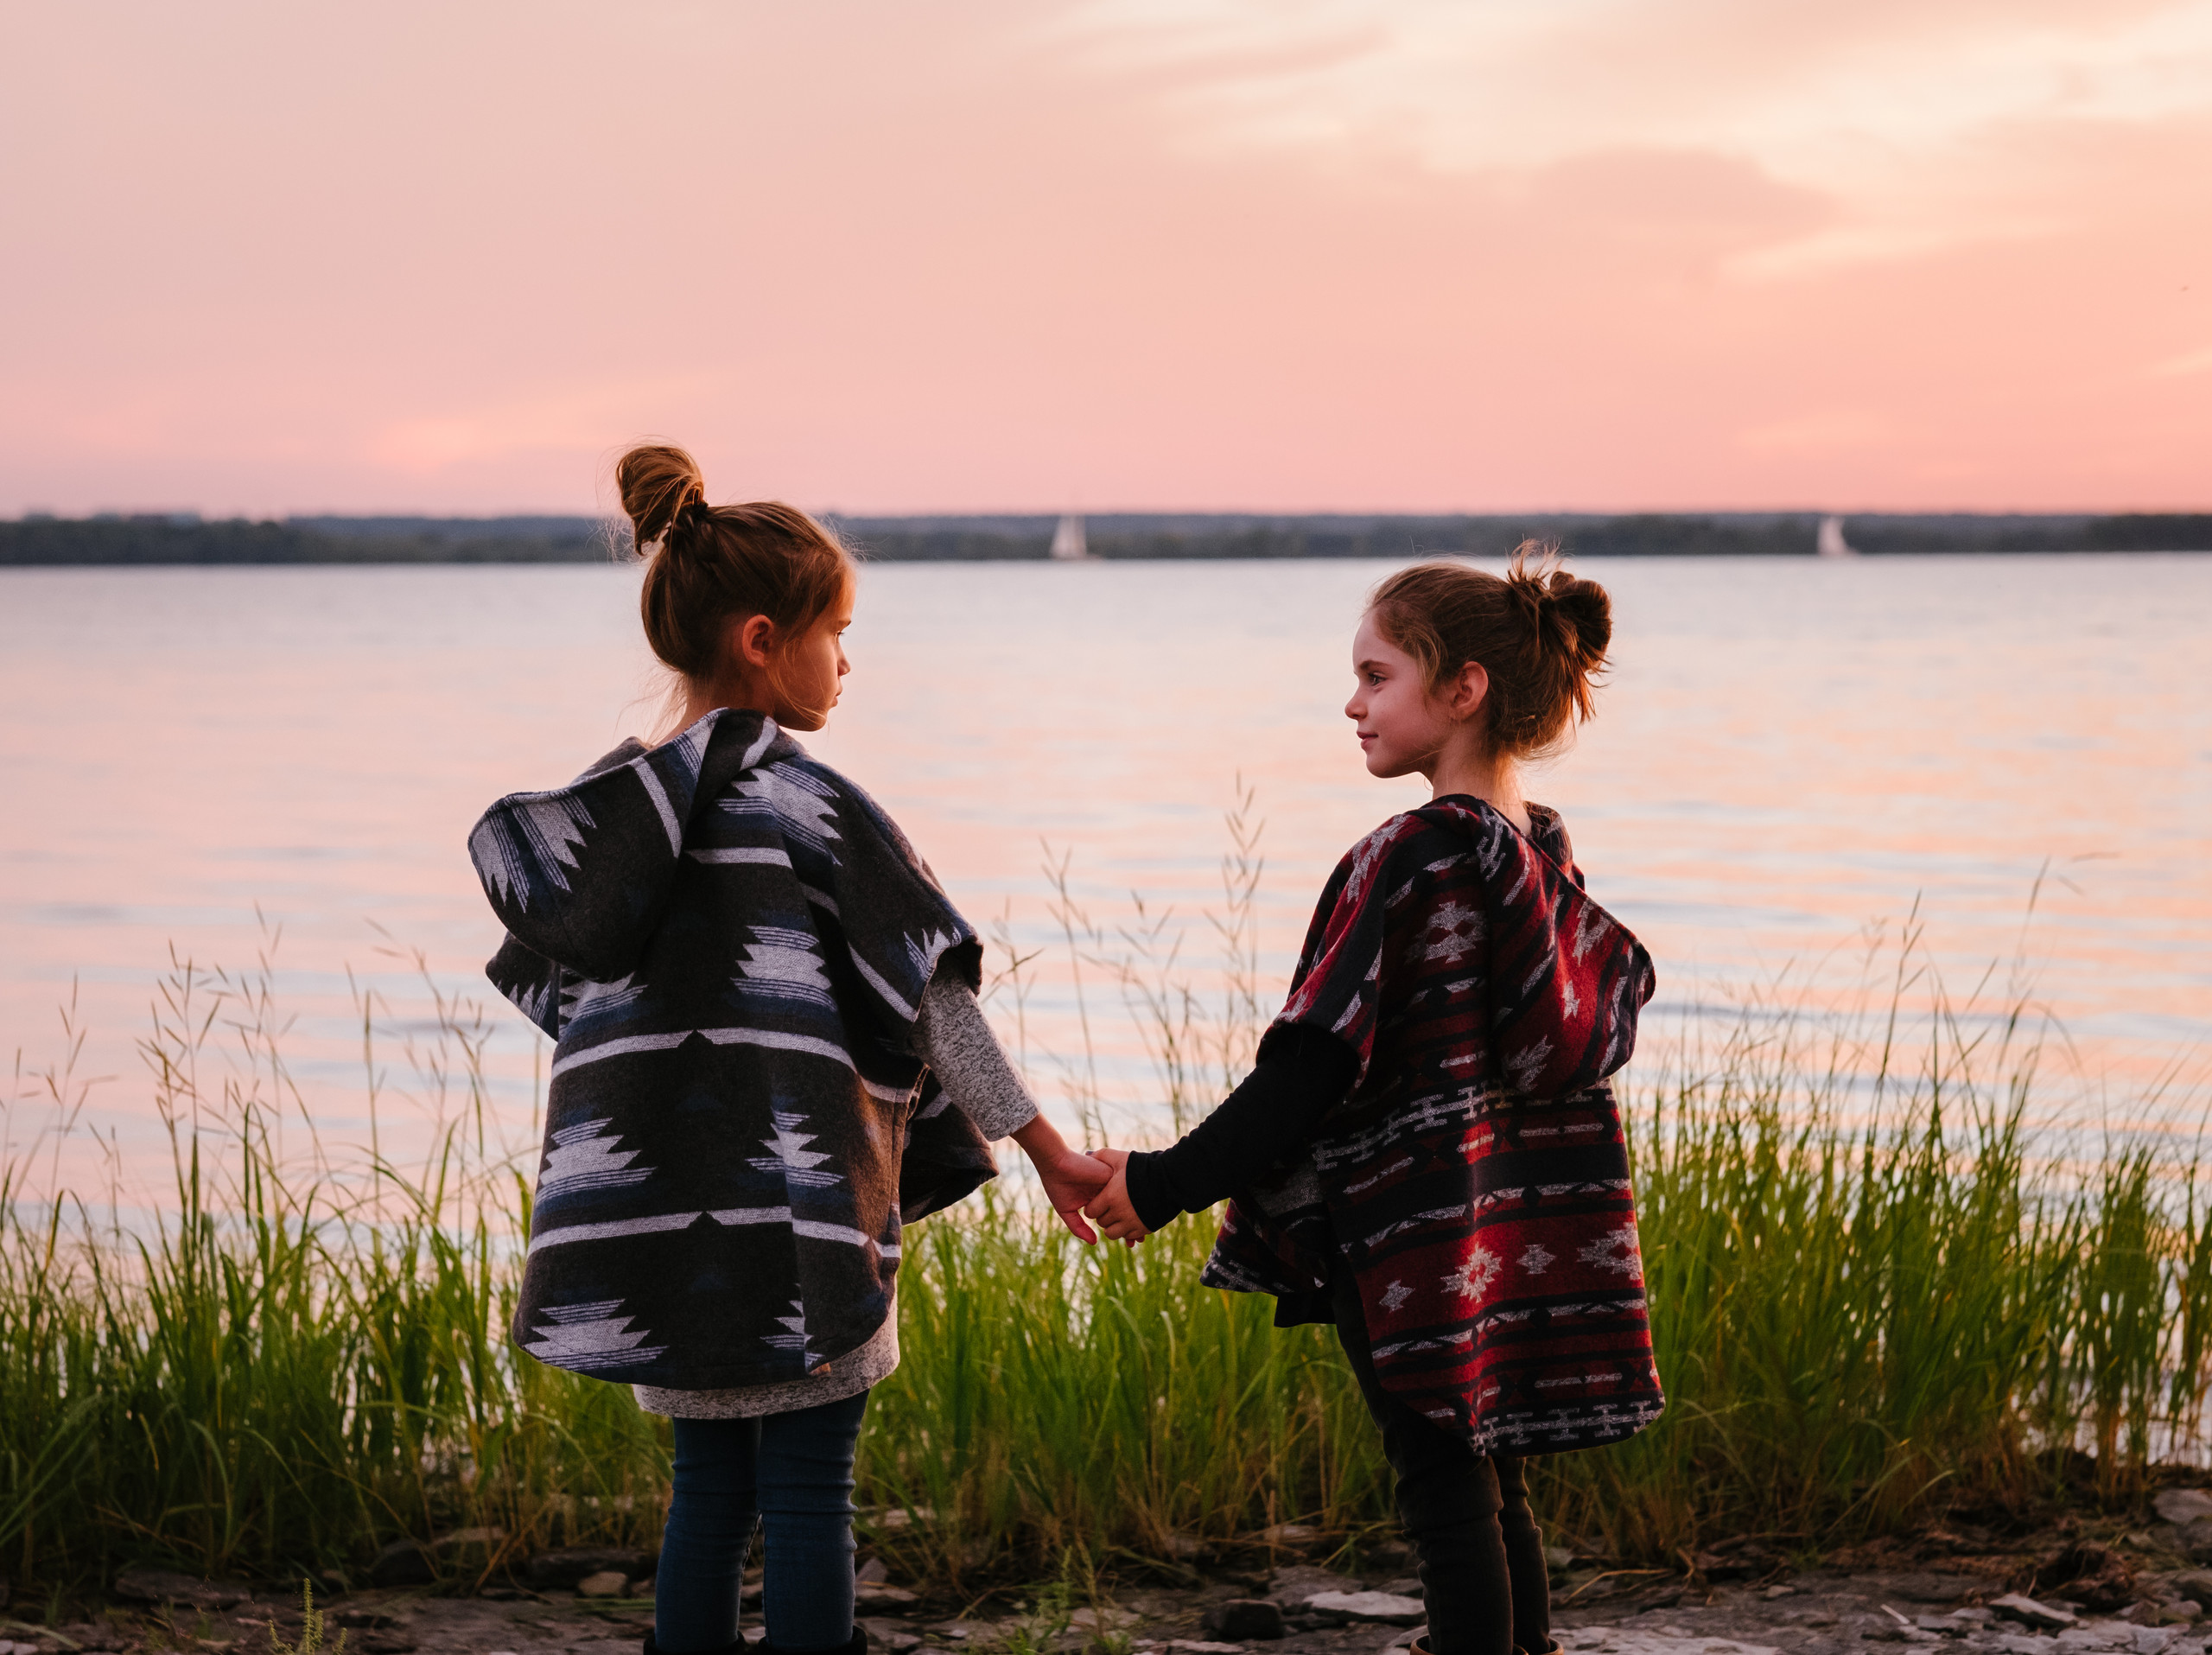 Ottawa Gatineau branding photographer Melanie Mathieu captures two models during branding and lifestyle photography session with Mini Tipi in Aylmer Gatineau QC. Two models wearing Mini Tipi ponchos during photography session at the beach in Aylmer QC.